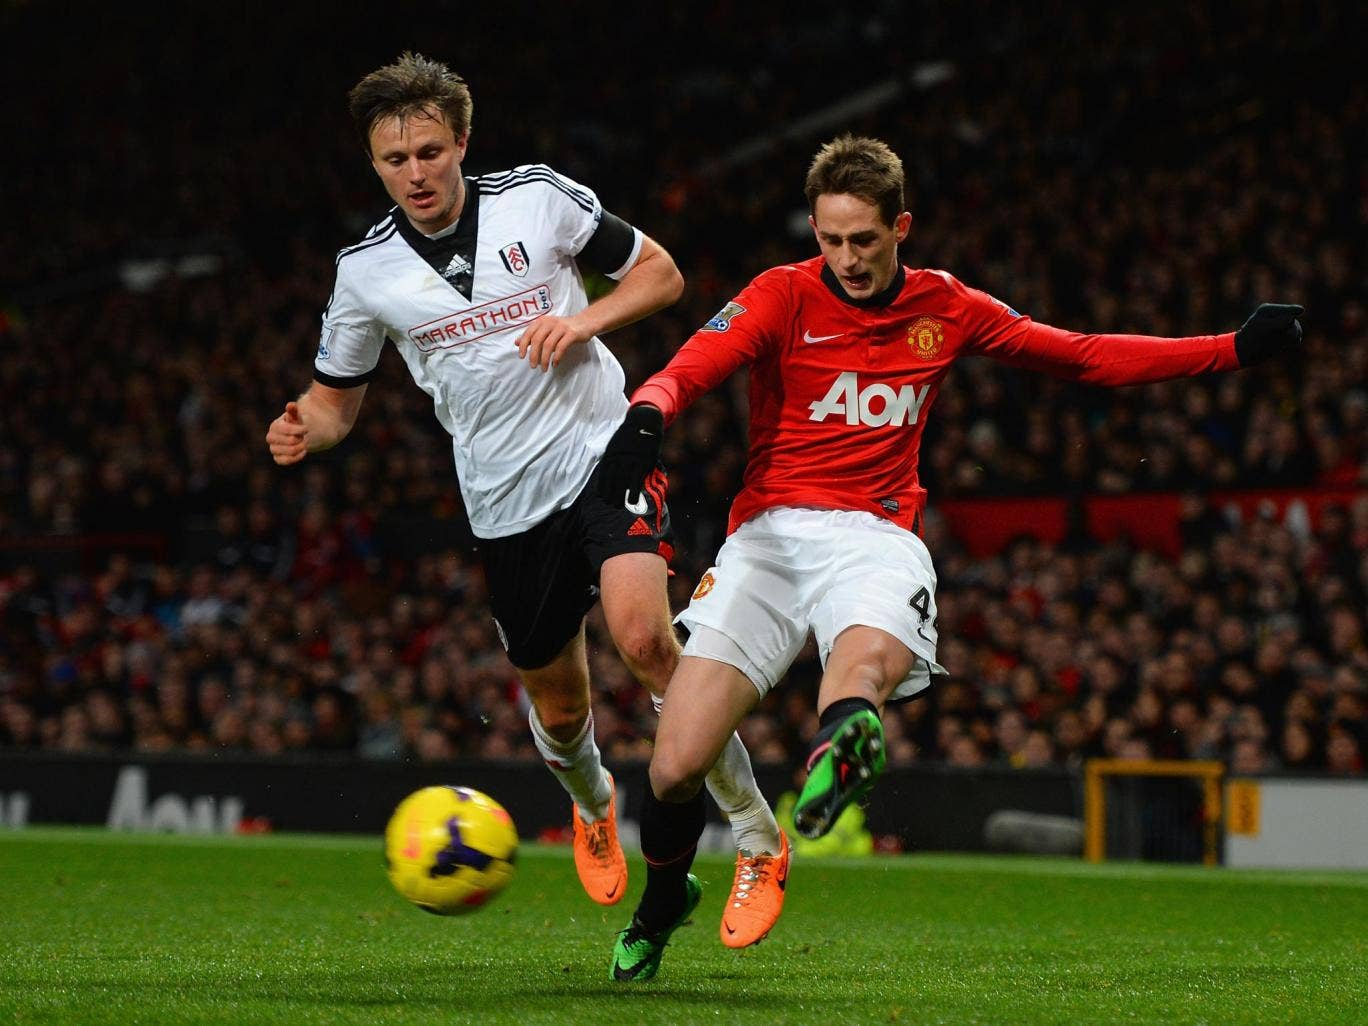 William Kvist of Fulham competes with Adnan Januzaj (right) of Manchester United